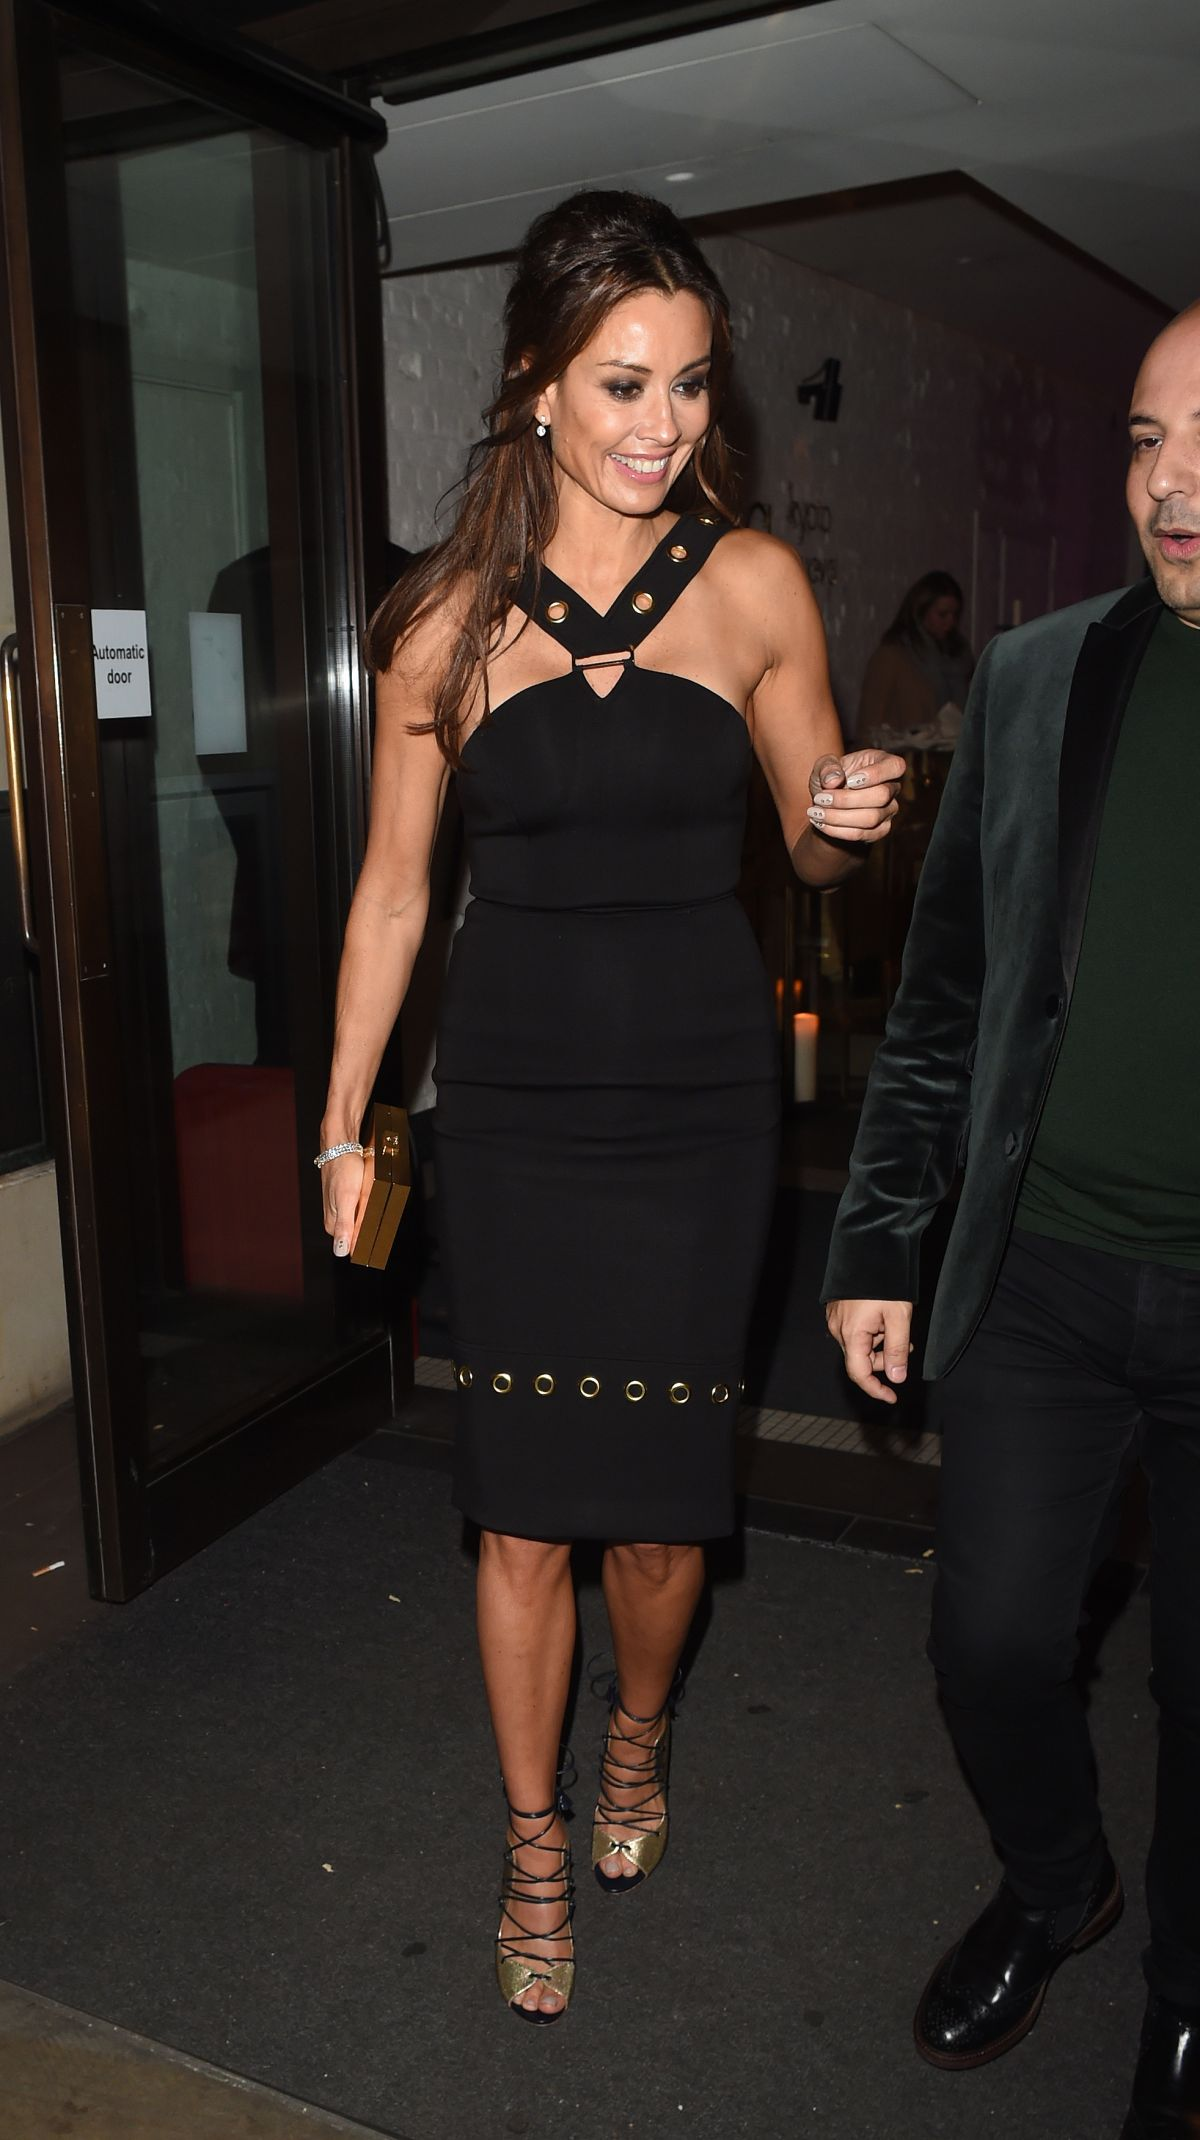 MELANIE SYKES at ITV Gala Afterparty in London 11/24/2016